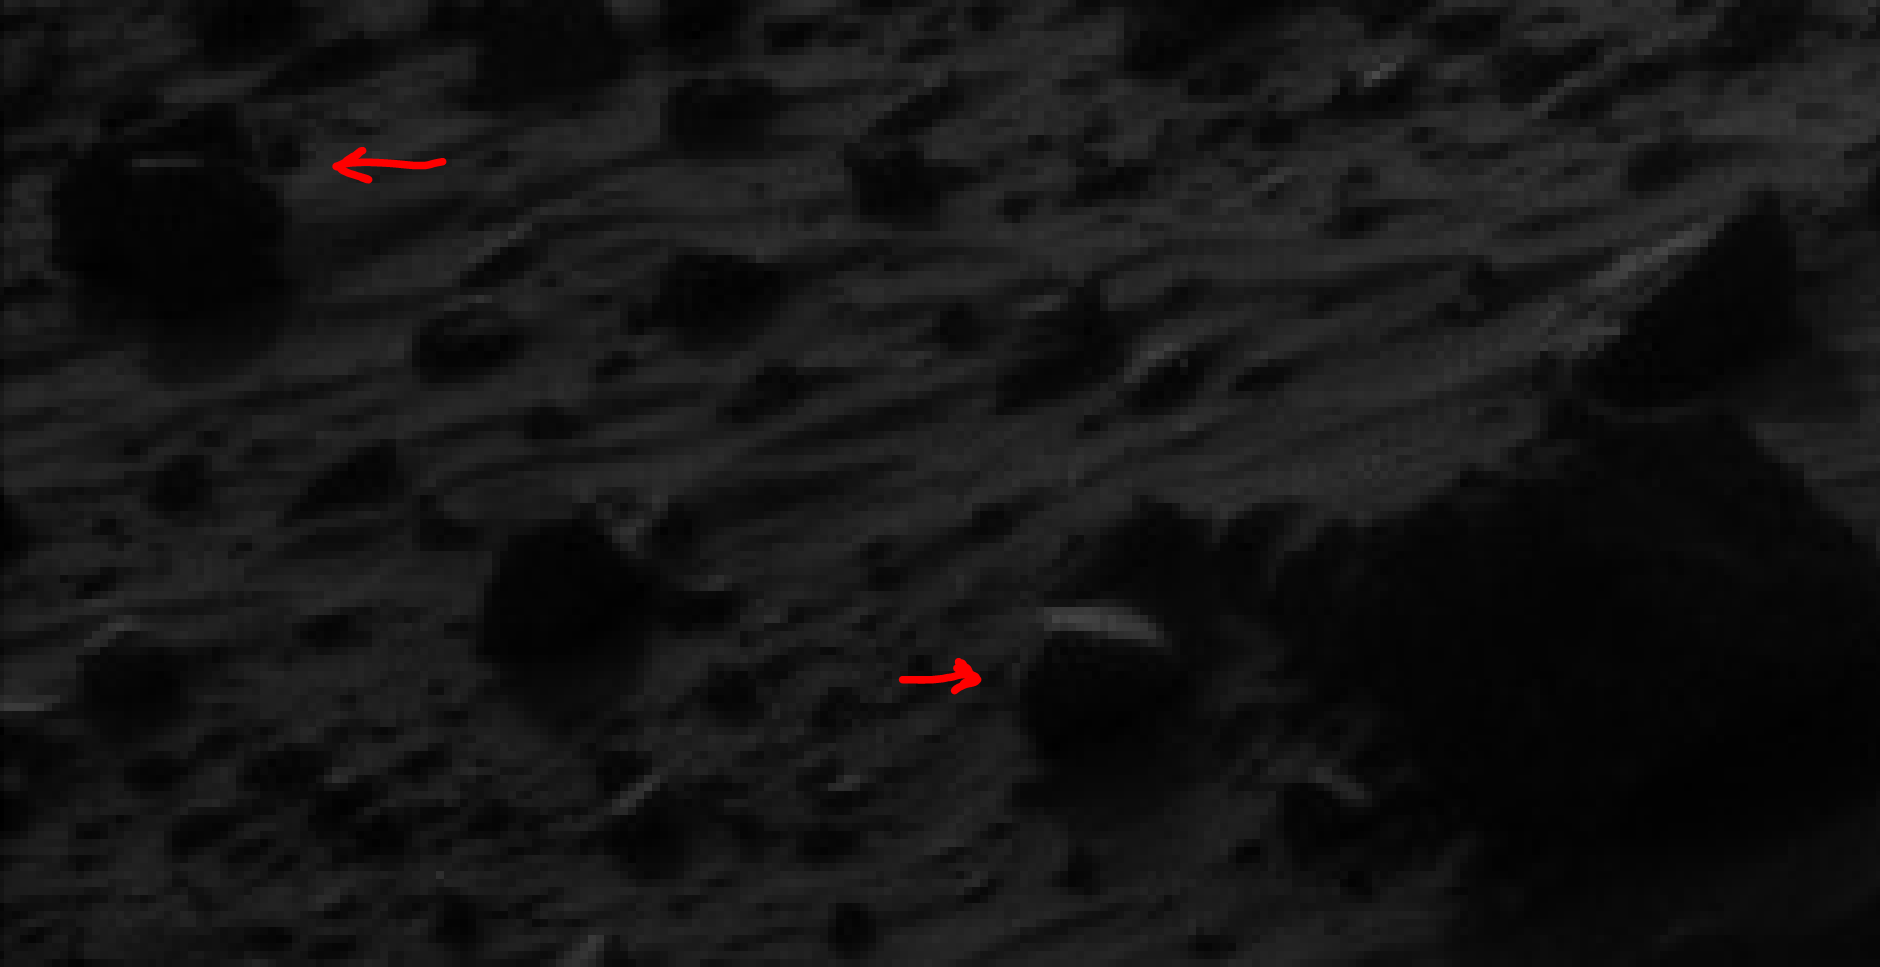 mars sol 1405 anomaly artifacts 23 was life on mars